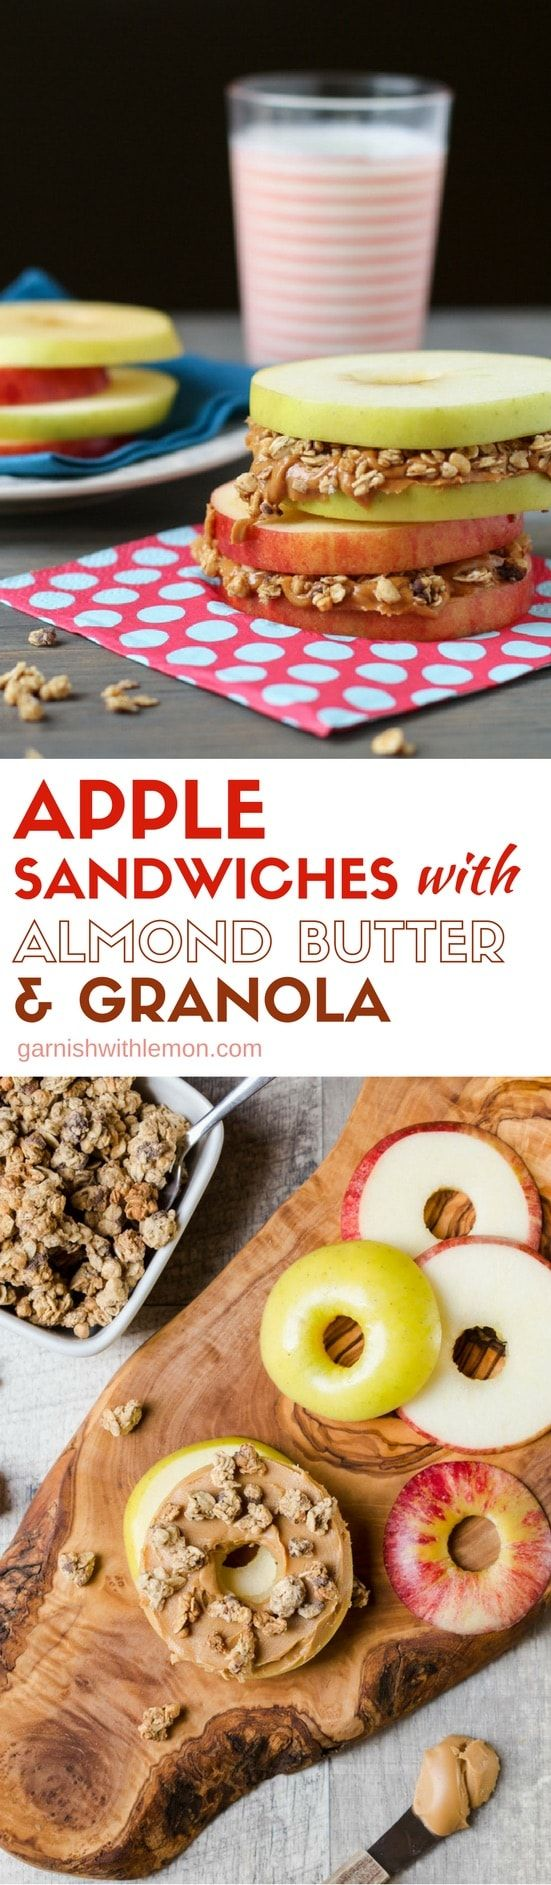 Snacking made simple! These protein-packed Apple Sandwiches with Almond Butter & Granola are a quick and easy way to keep the munchies at bay!